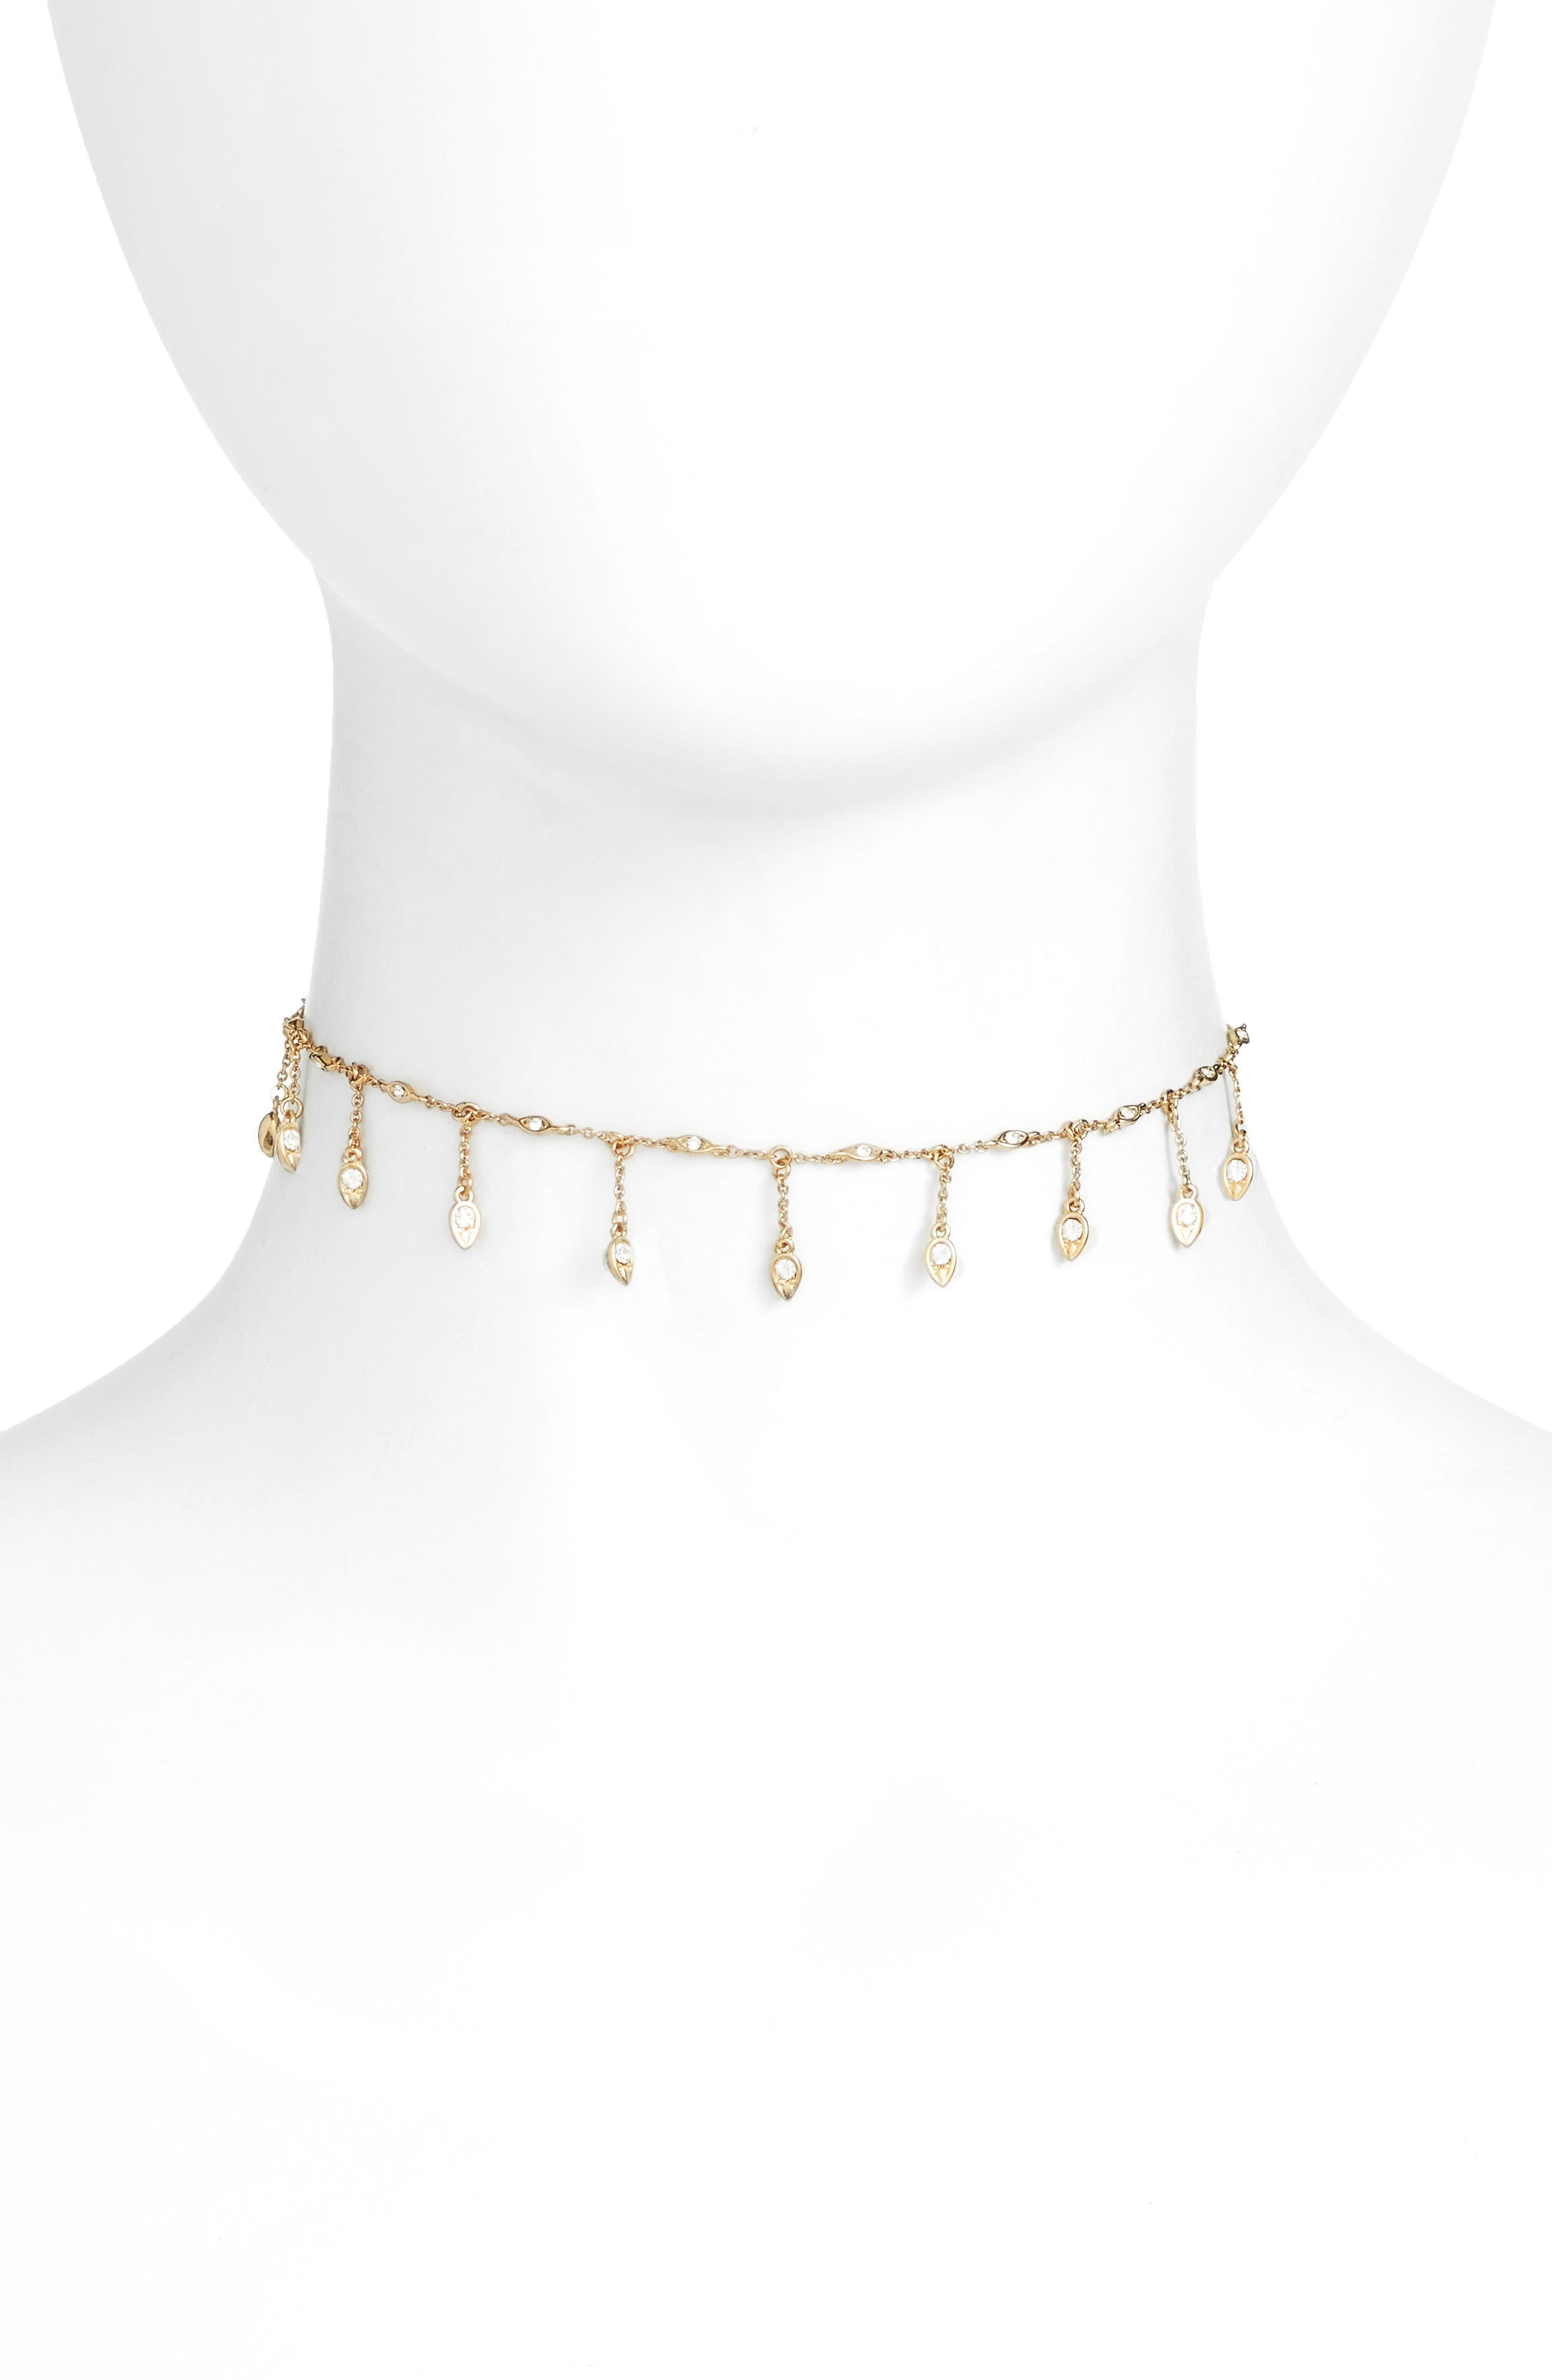 Main Image - Luv AJ Revel Starburst Choker Necklace